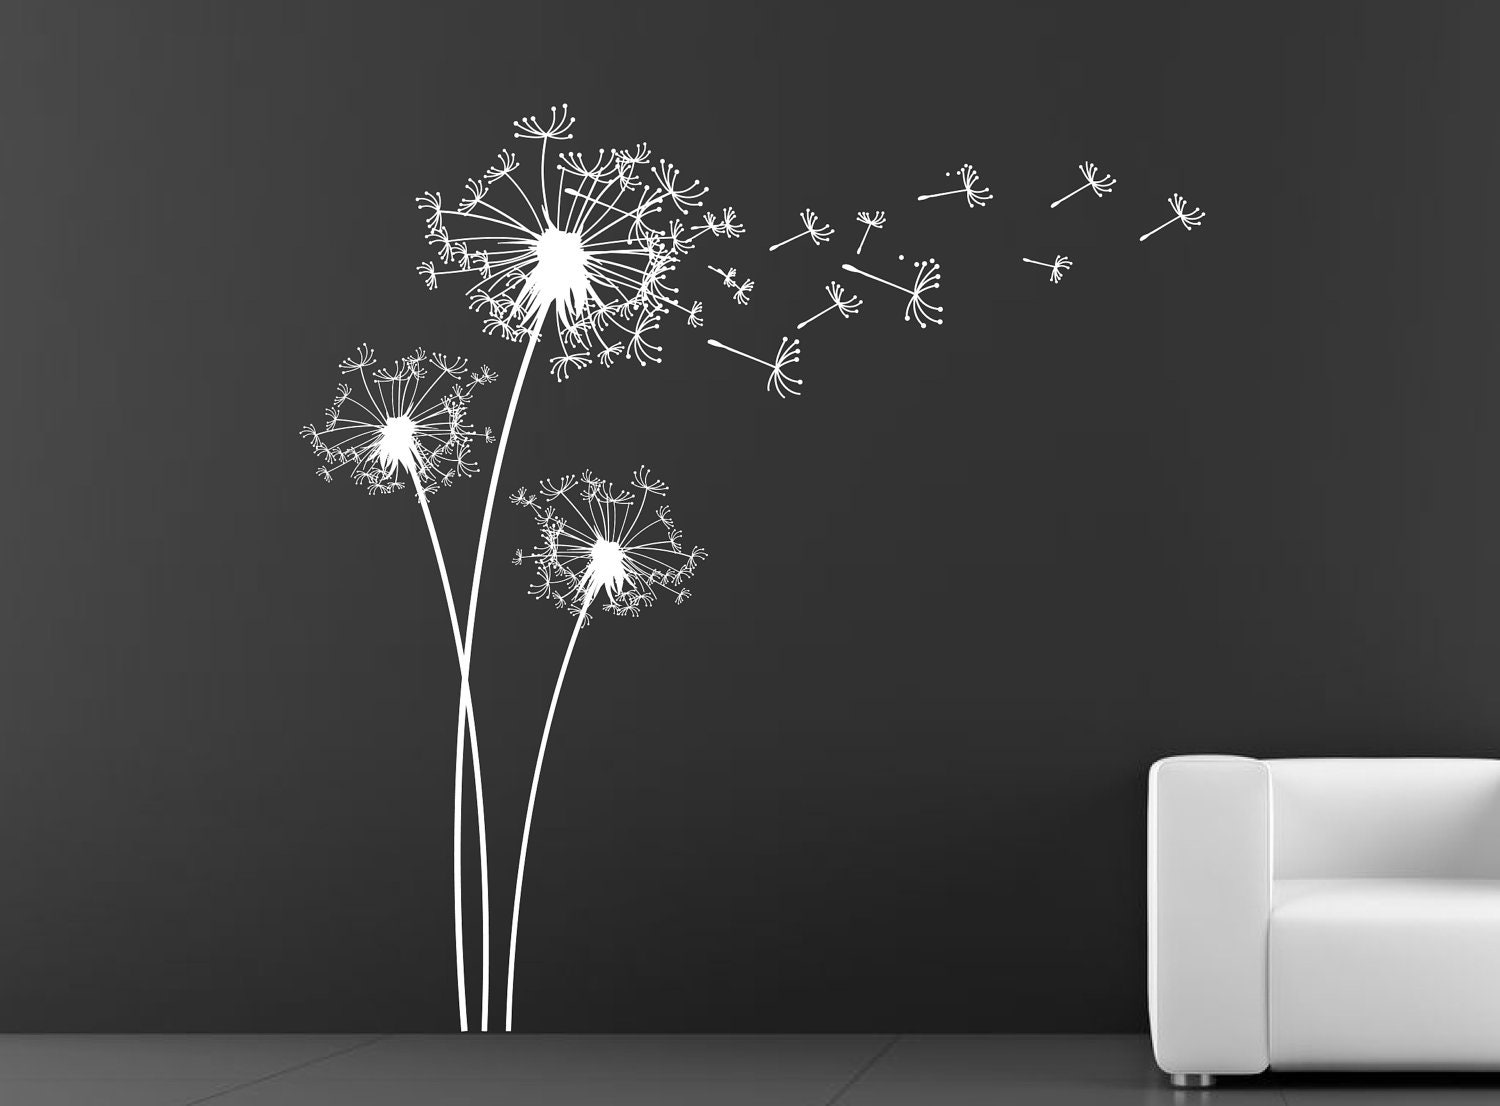 Dandelion wall decal wall sticker by decoryourwall on etsy for Dandelion mural